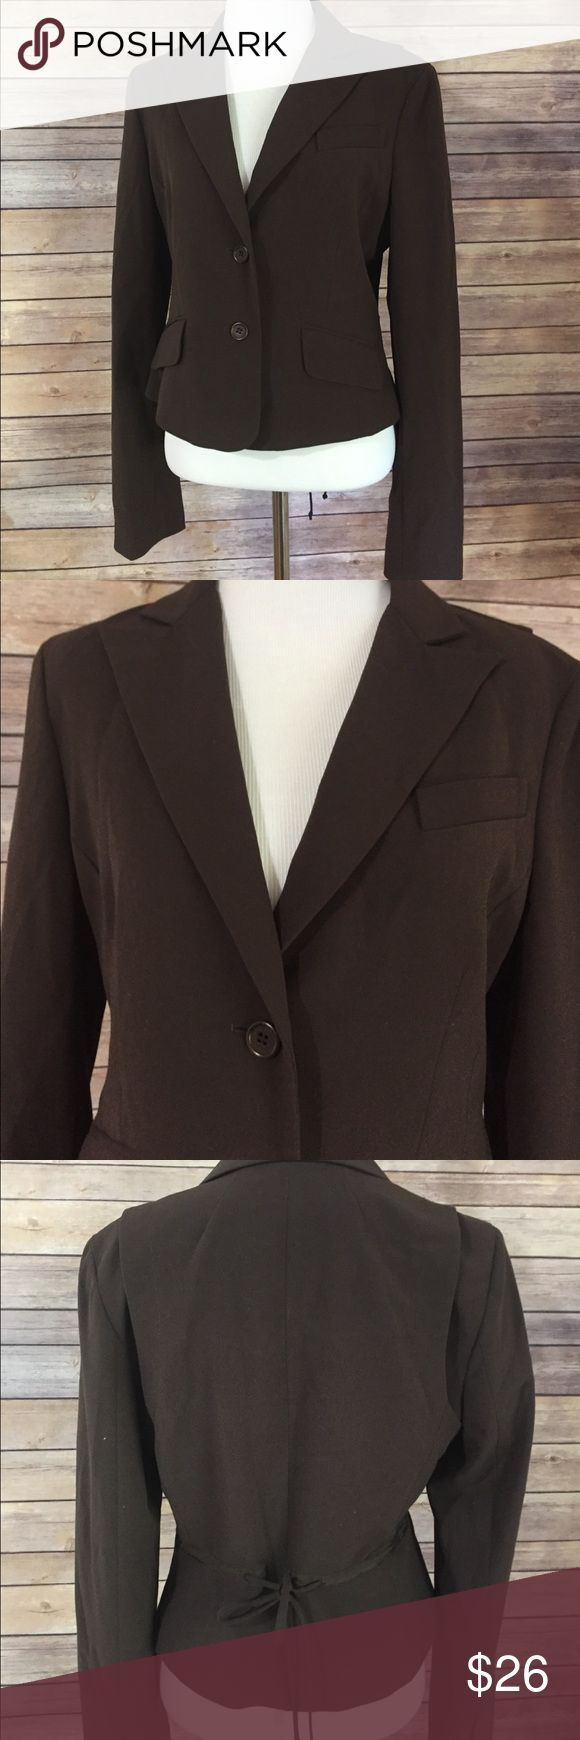 """BCBG Maxazria Cropped Blazer medium This is adorable from BCBG Maxazria, Sz medium cropped jacket. This will be cute this fall with skinny jeans and boots!  Measures 36"""" under arm to under arm, flat and doubled. The length is 20 1/2 inches. Like new condition. J21 BCBGMaxAzria Jackets & Coats Blazers"""